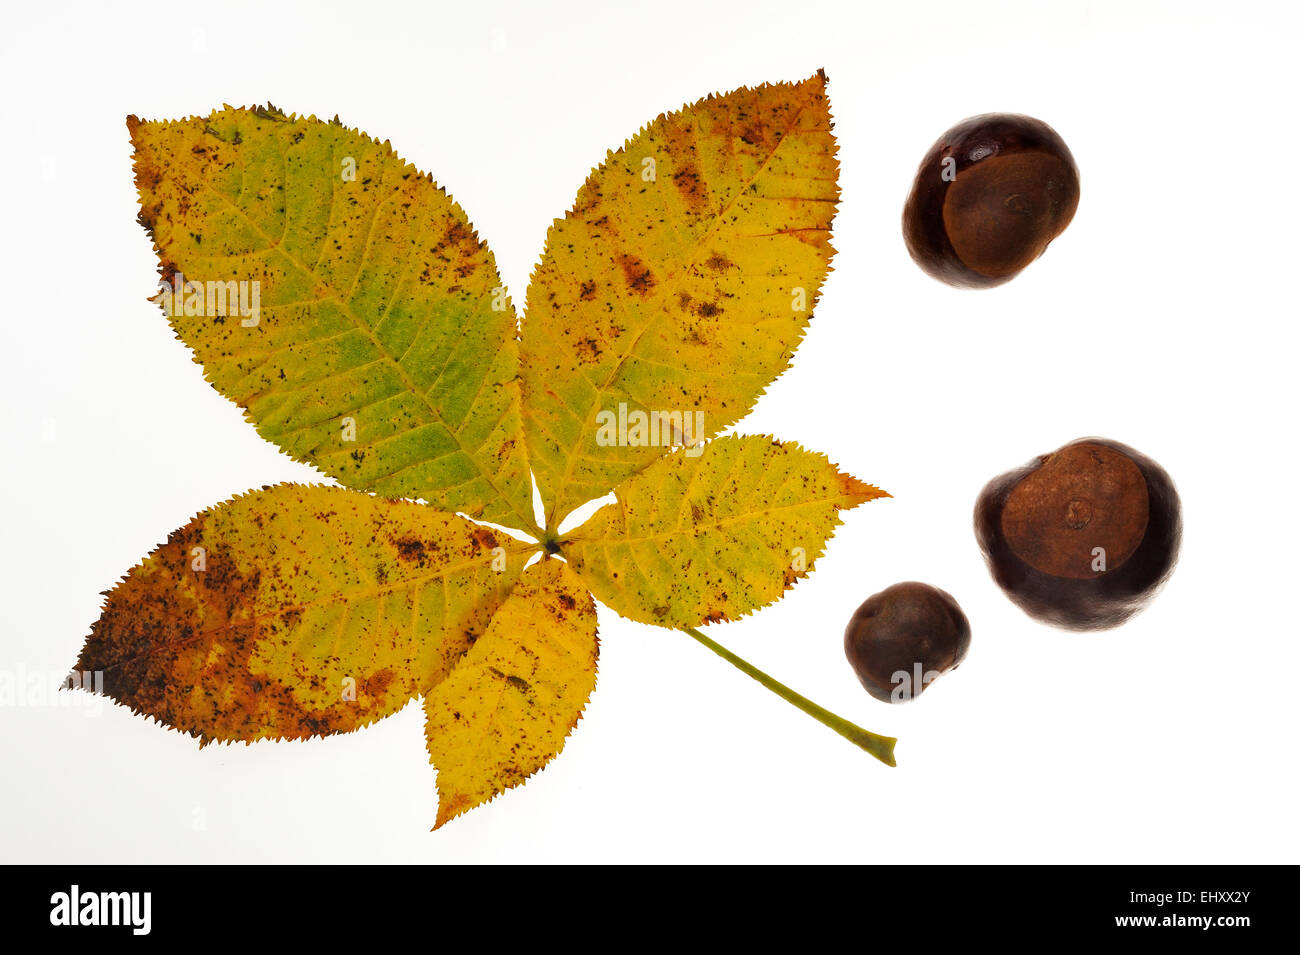 Horse chestnut / conker tree (Aesculus hippocastanum) conkers and leaves in autumn colours against white background - Stock Image